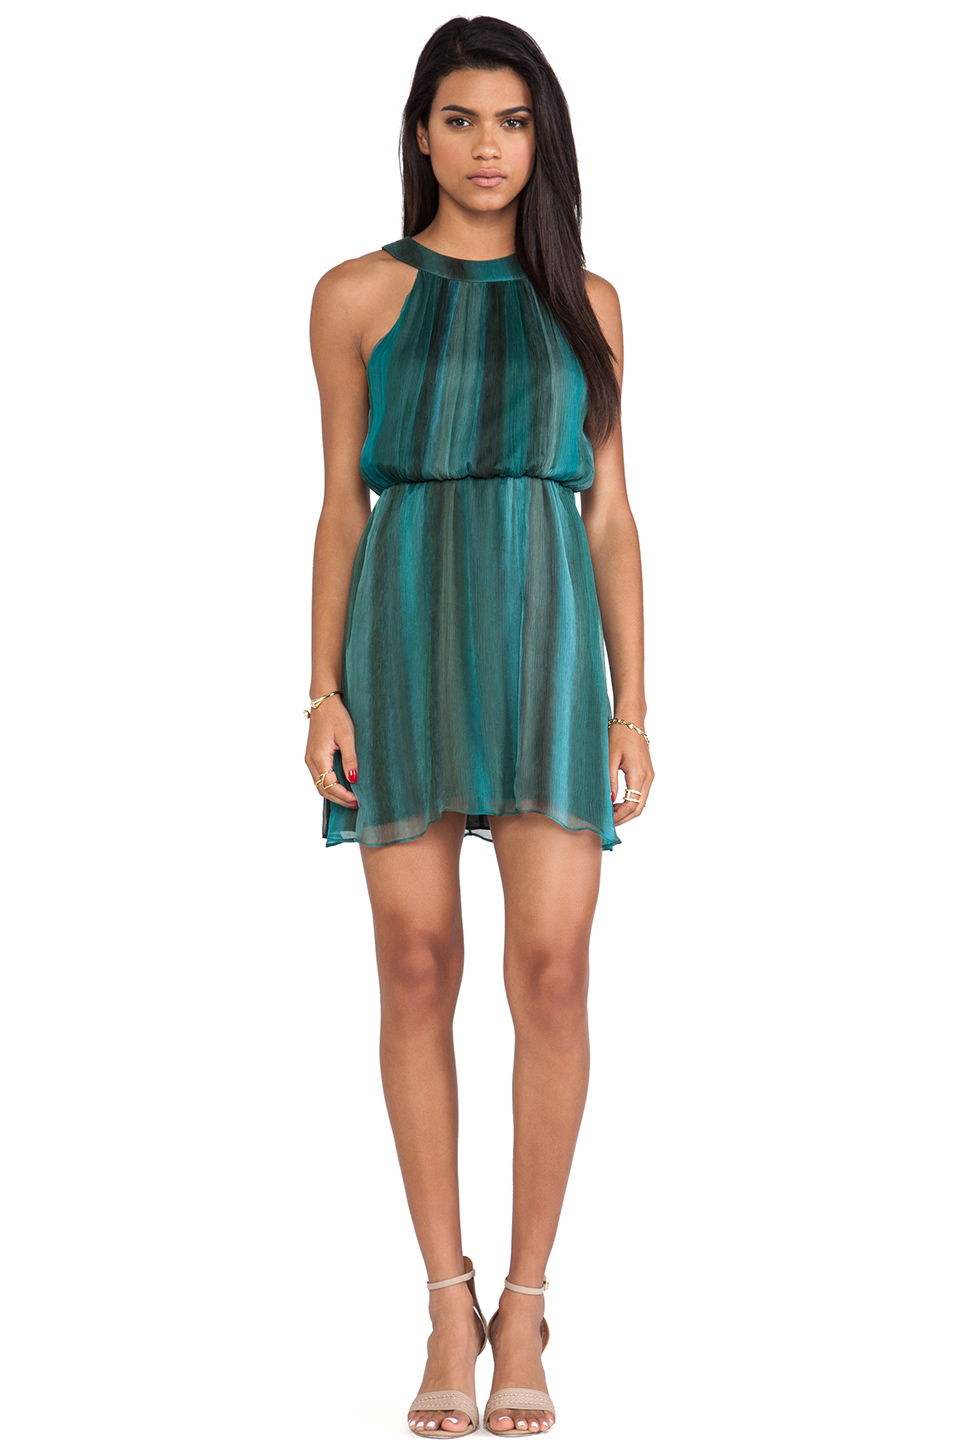 Alice + Olivia Jae Closed Back Dress in Teal